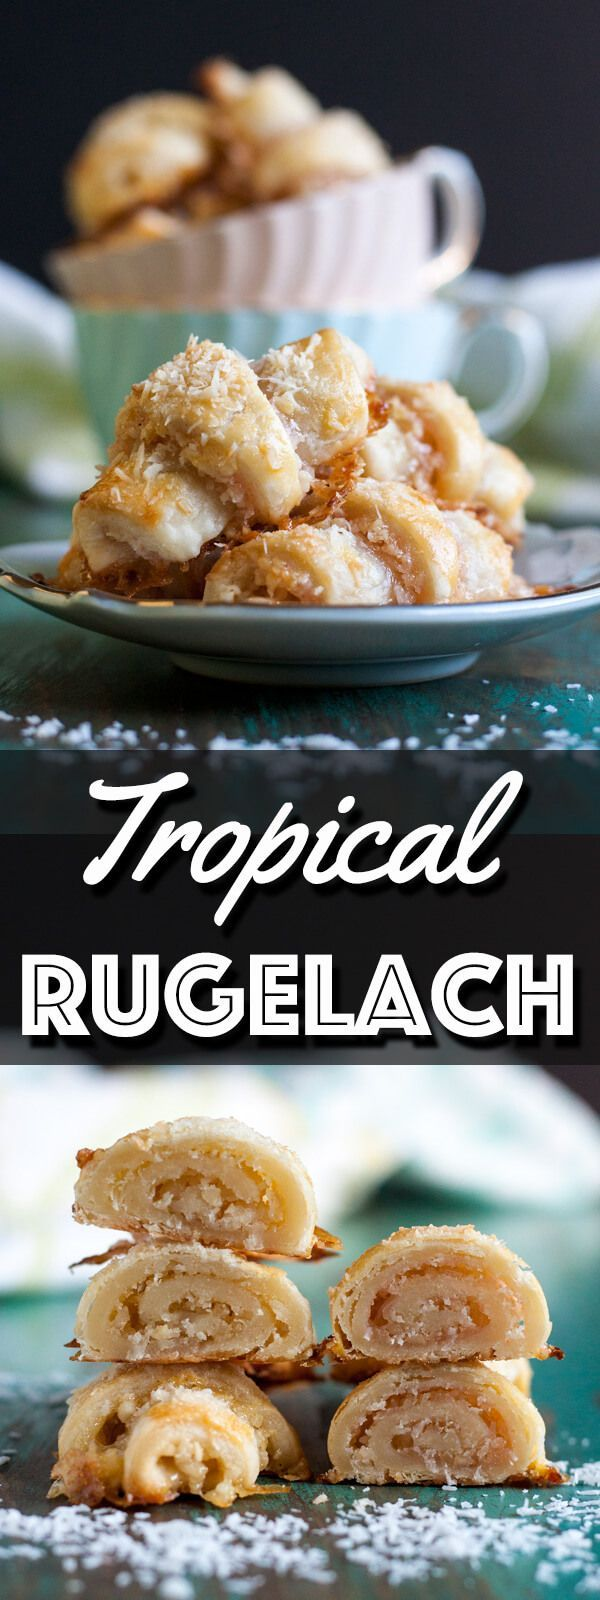 Tropical Rugelach are delicious little bites of tender pastries filled with tropical fruit butter, coconut flake and macadamia nut. They taste like a vacation in your mouth.   wildwildwhisk.com #rugelach #tropical